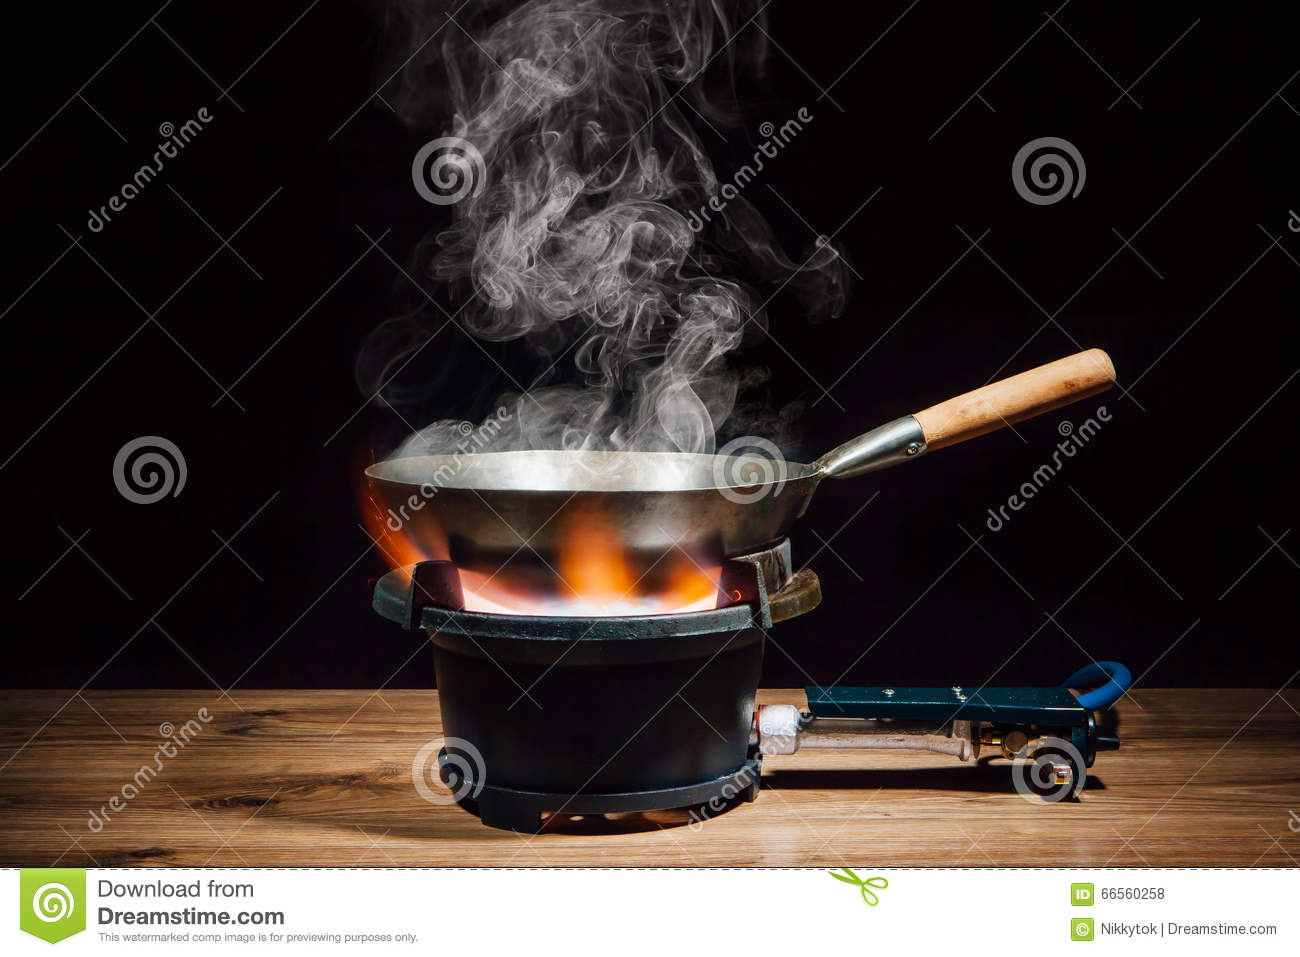 casserole chinoise de wok sur le br leur gaz du feu photo stock image 66560258. Black Bedroom Furniture Sets. Home Design Ideas